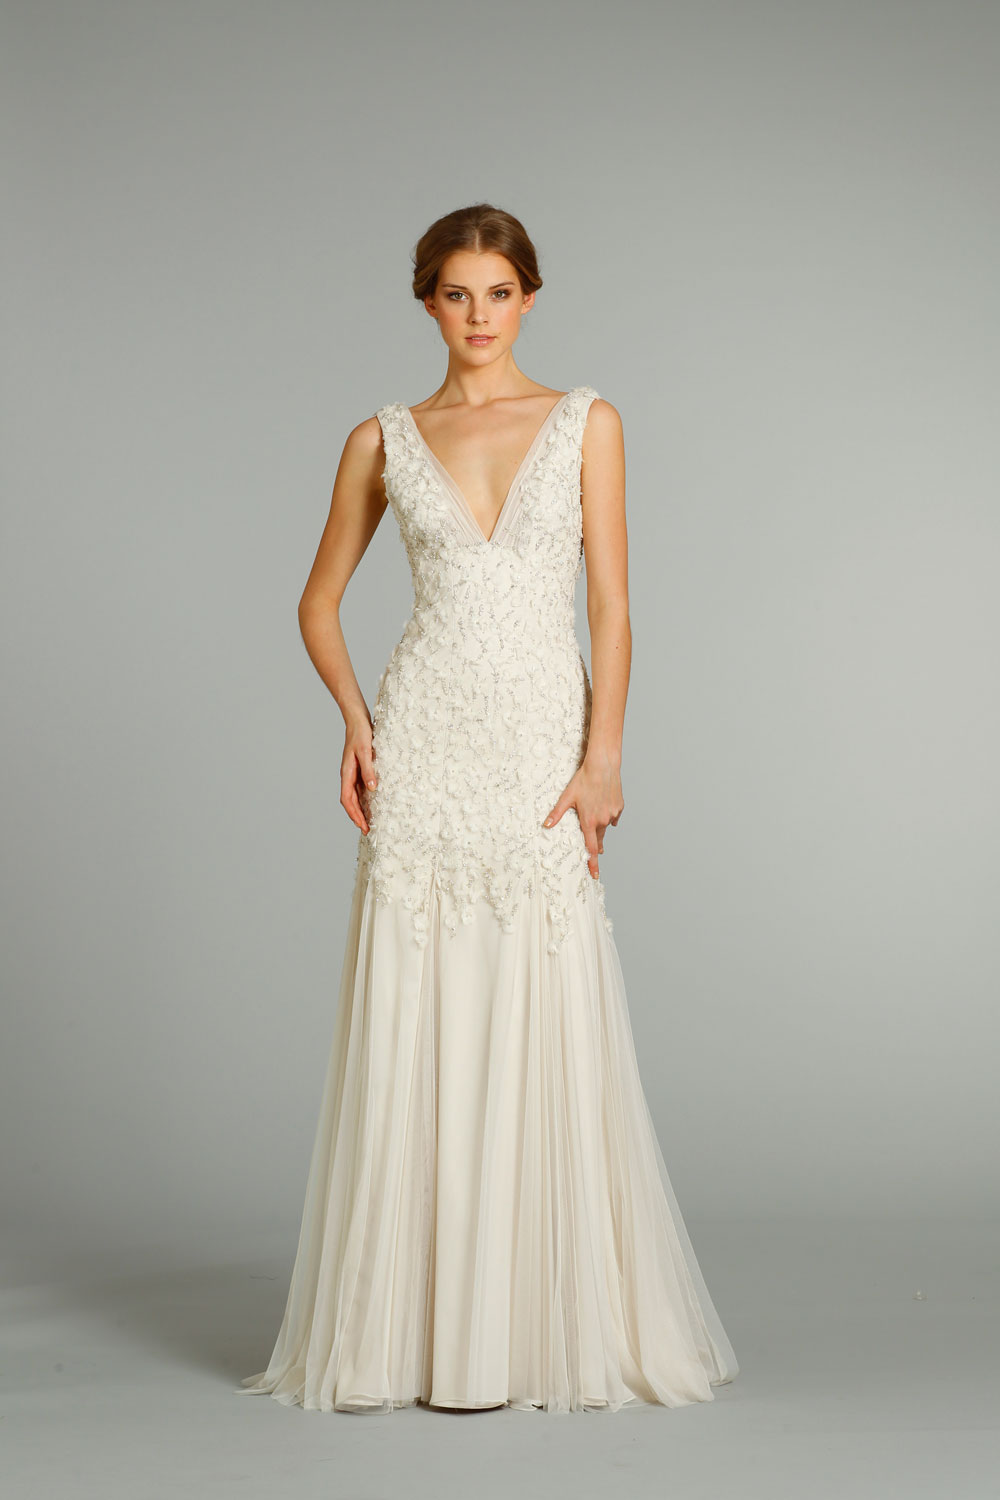 Fall 2012 wedding dress jim hjelm bridal gowns 8265 for Jim hjelm wedding dresses